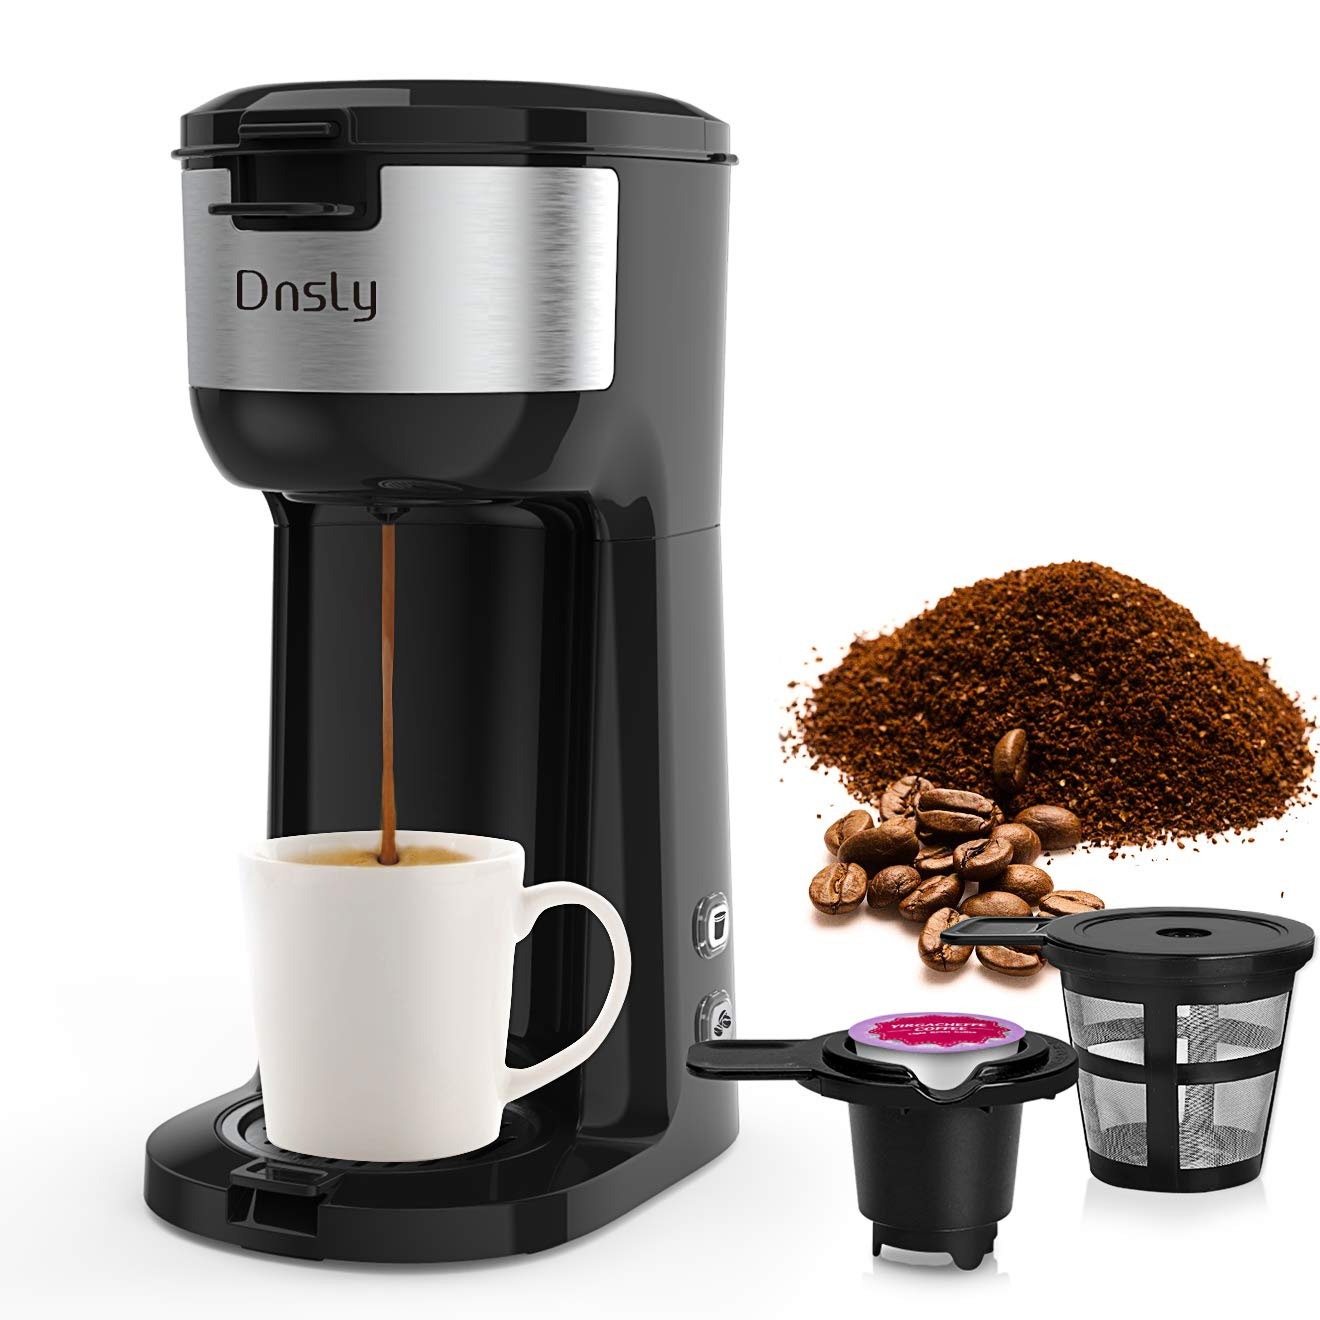 Dnsly Coffee Maker Single Serve